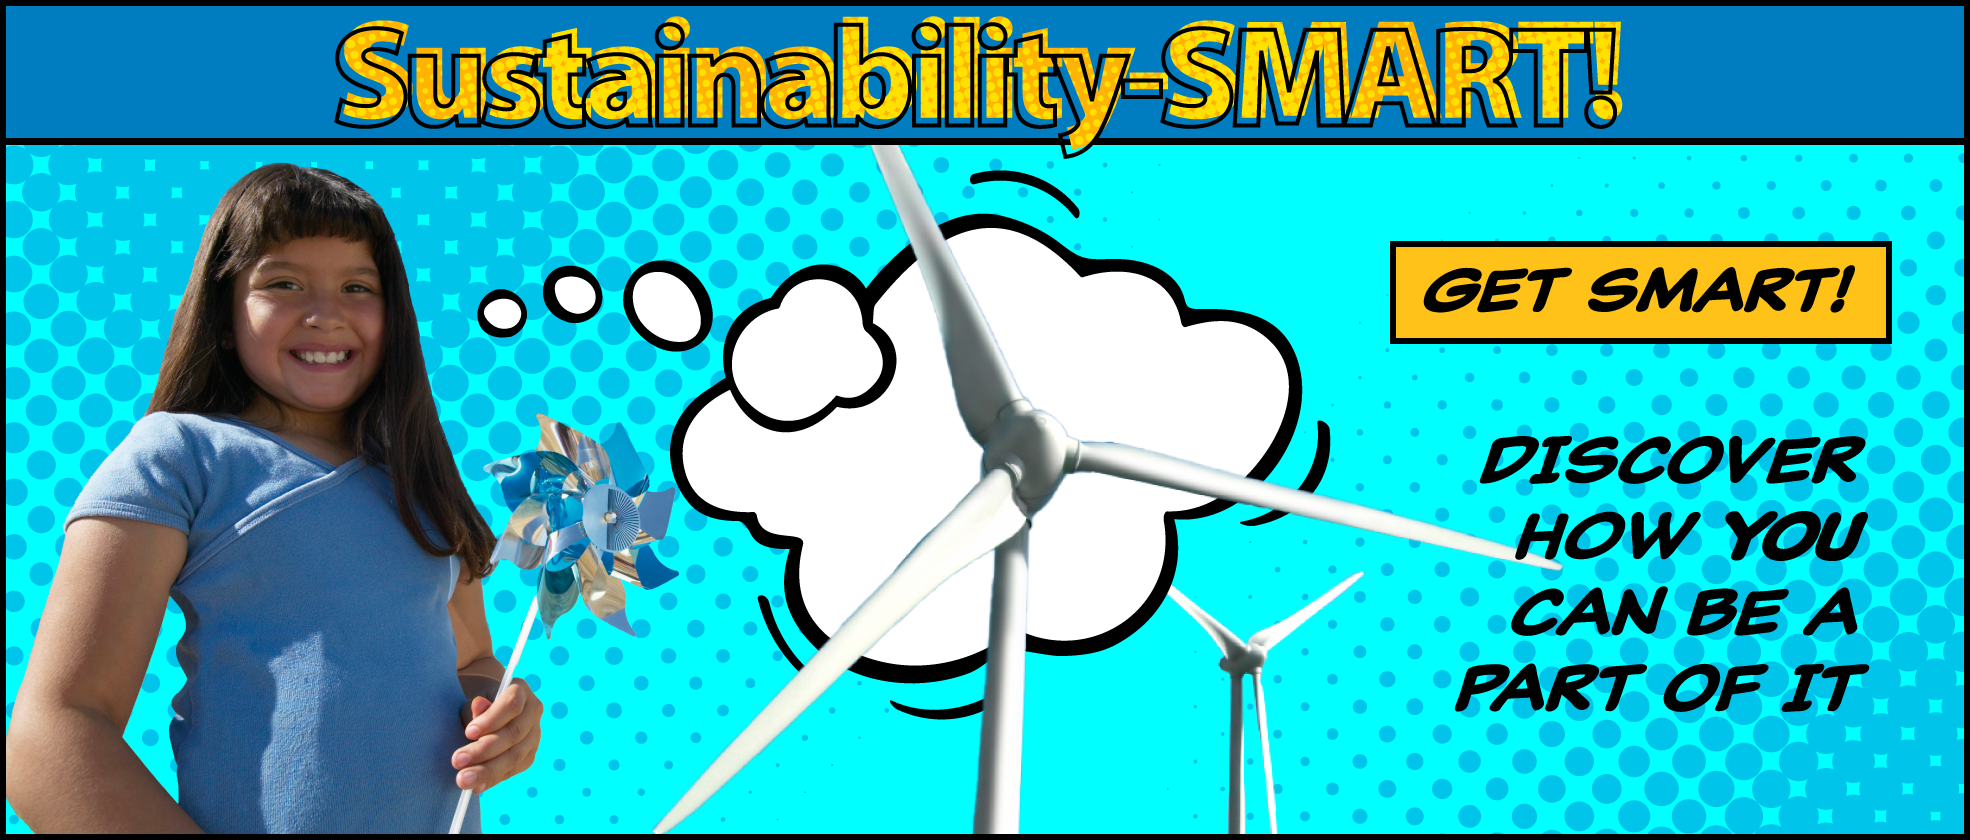 66610 Sustainability SMART hmpg carousel 1970x840 1